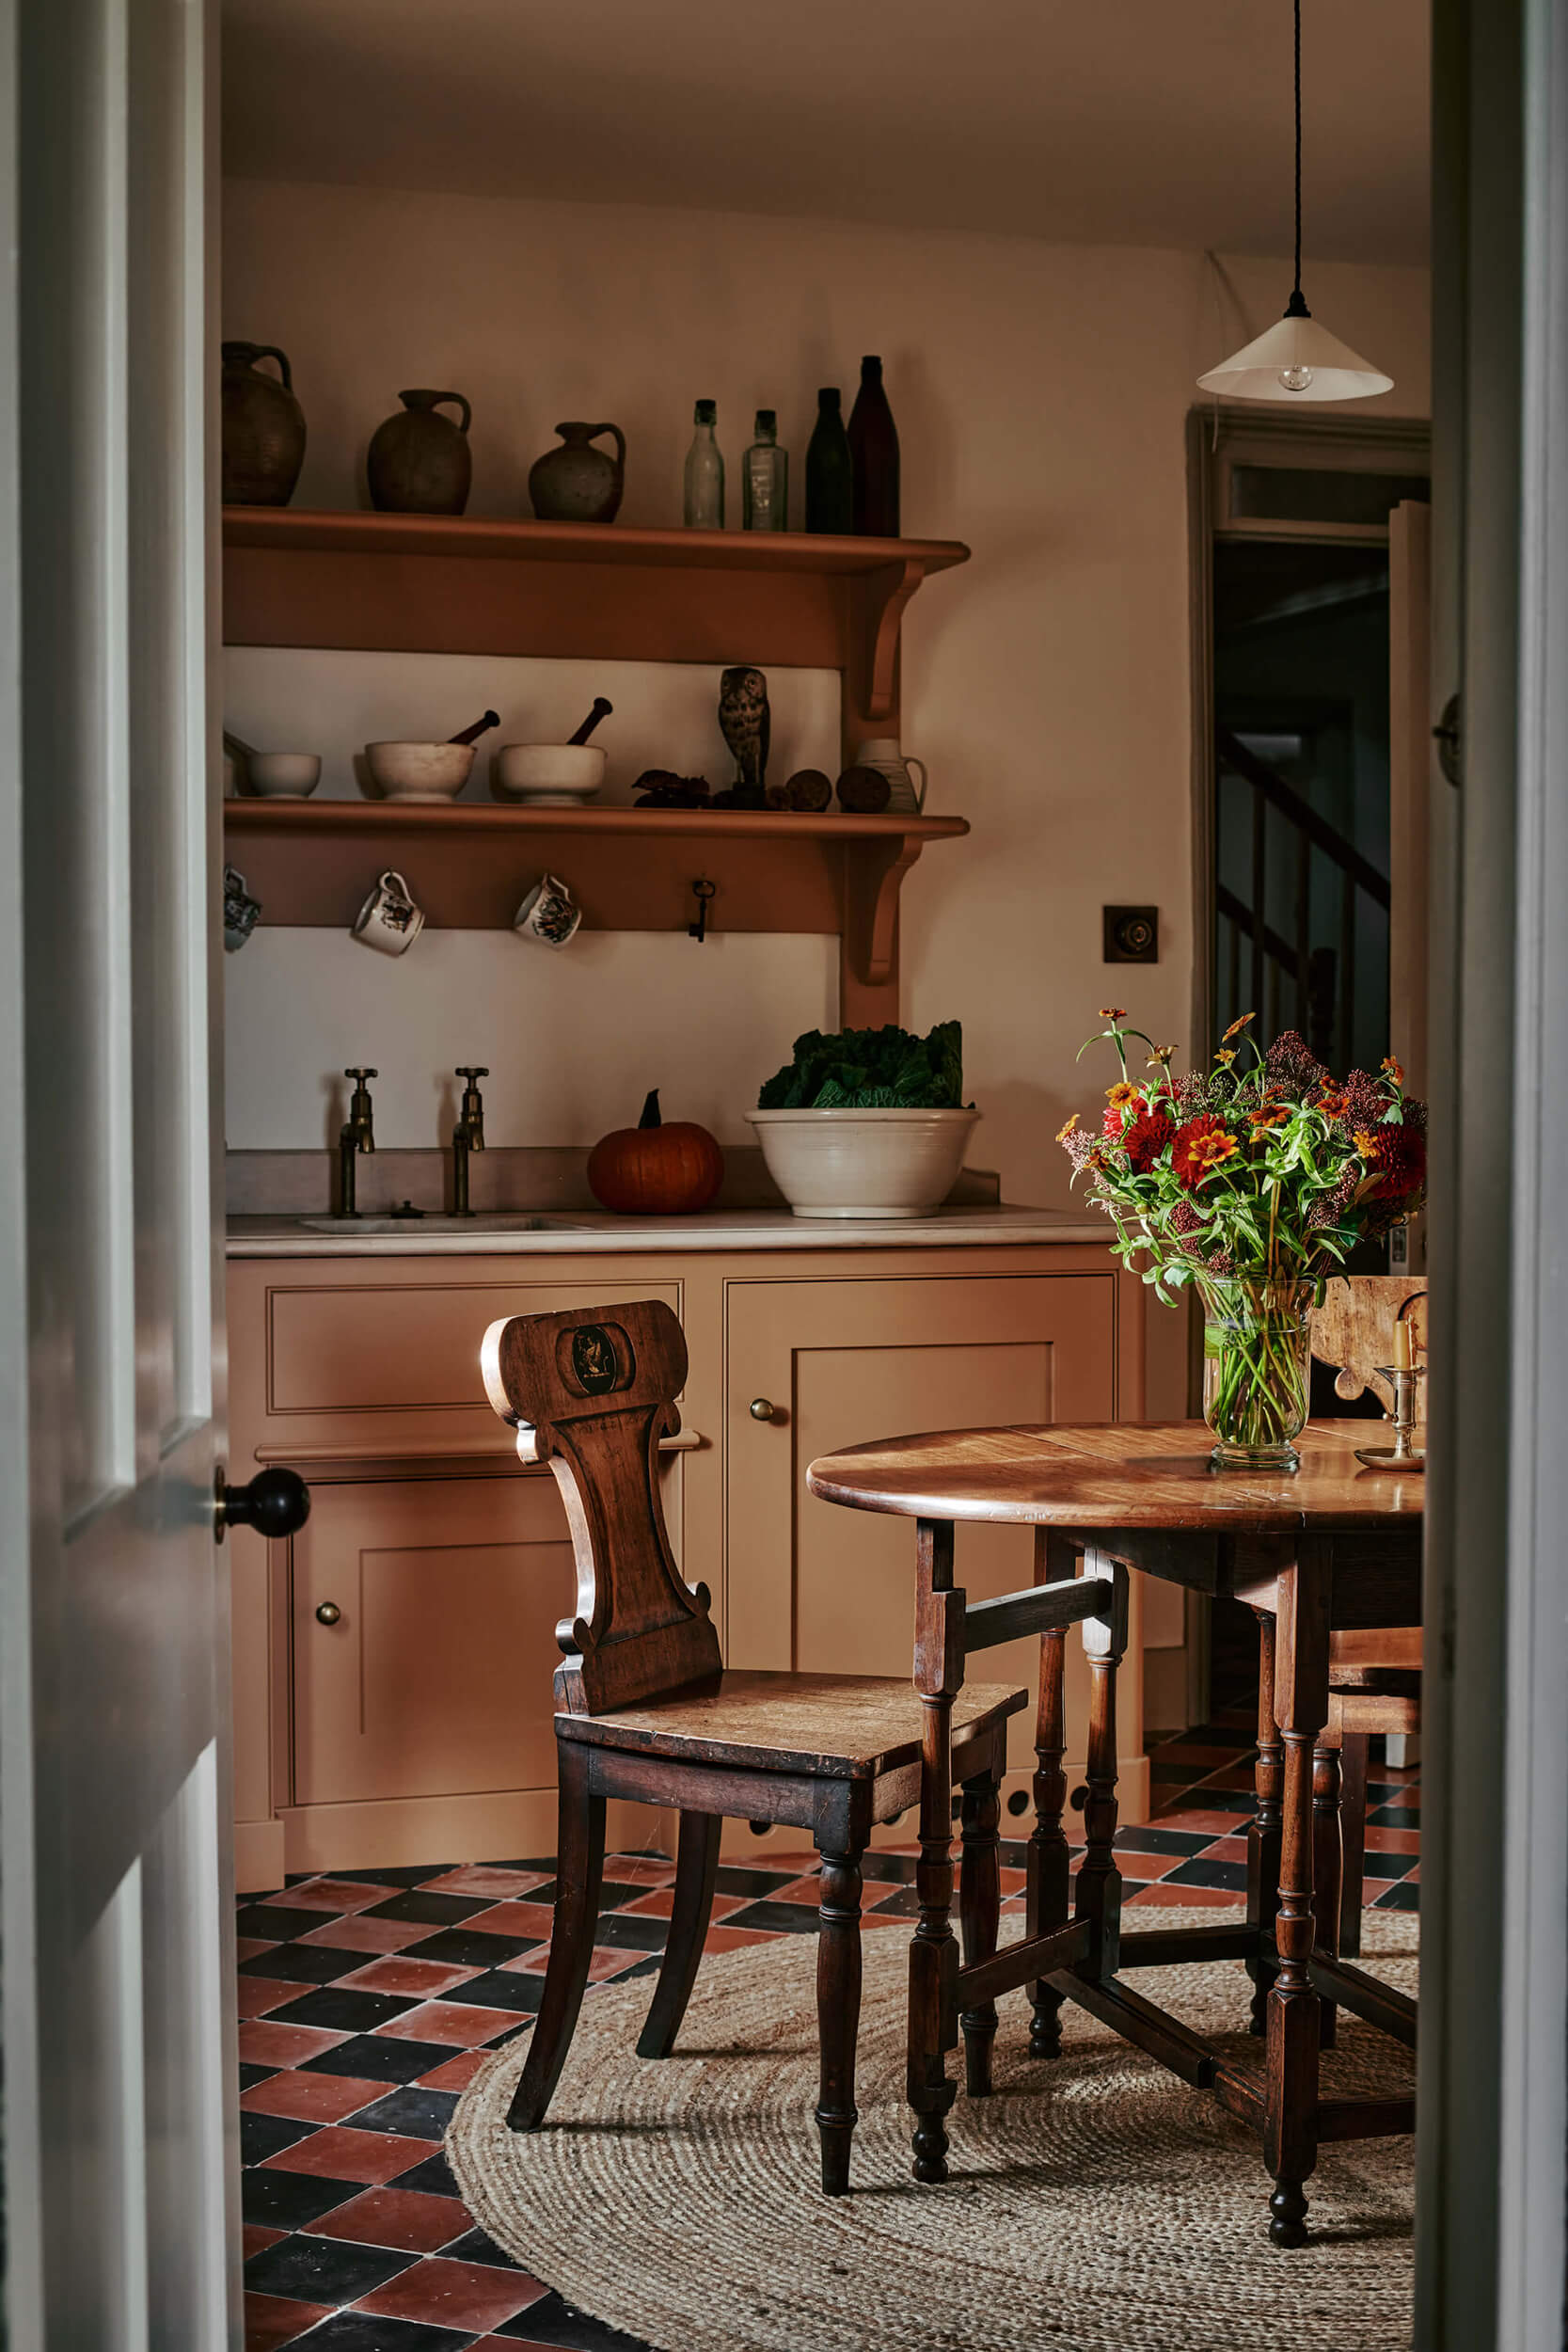 Back kitchen with Farrow and Ball wet sand